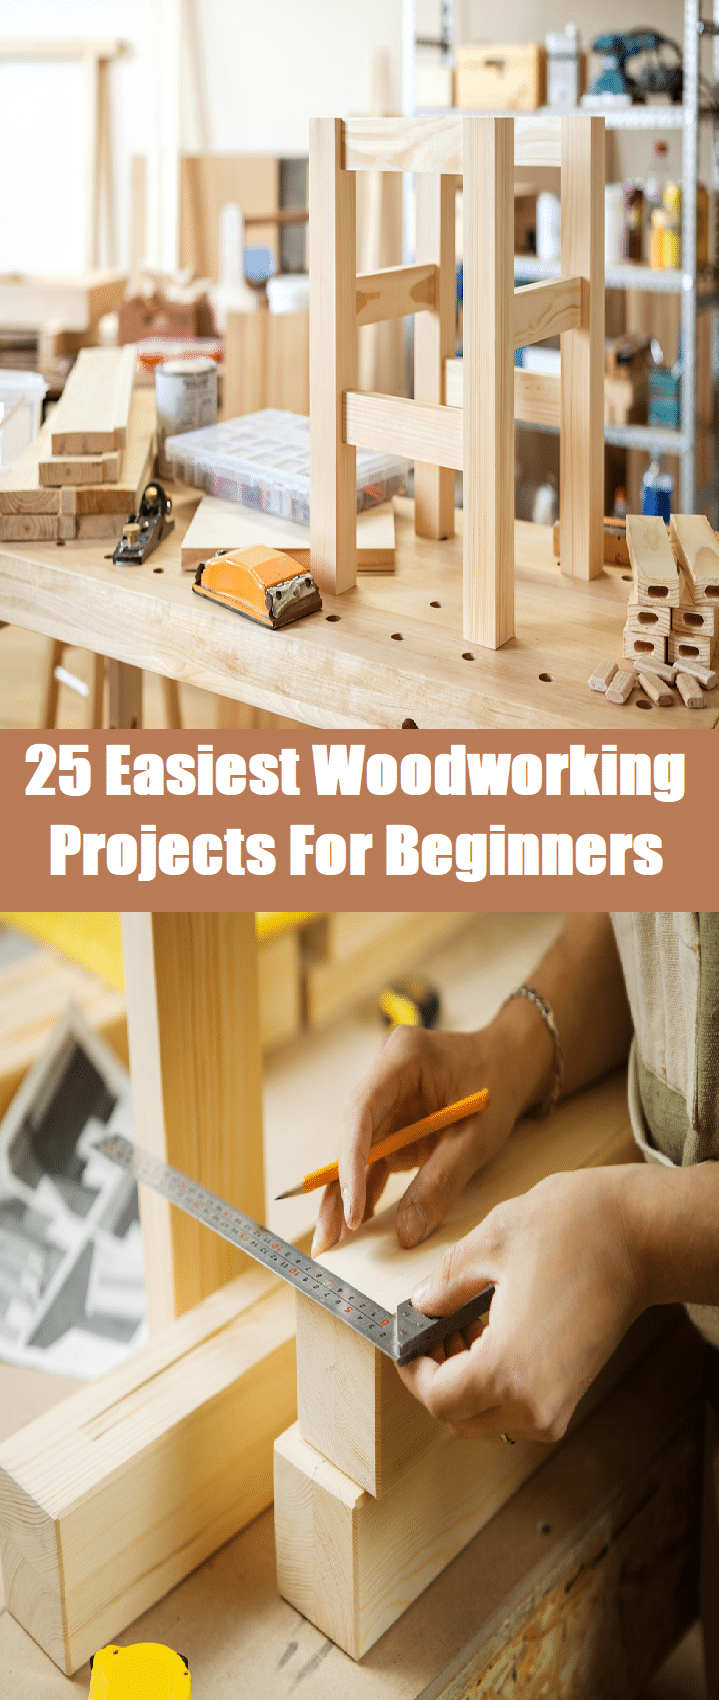 25 easiest woodworking projects for beginners on useful diy wood project ideas beginner woodworking plans id=90346